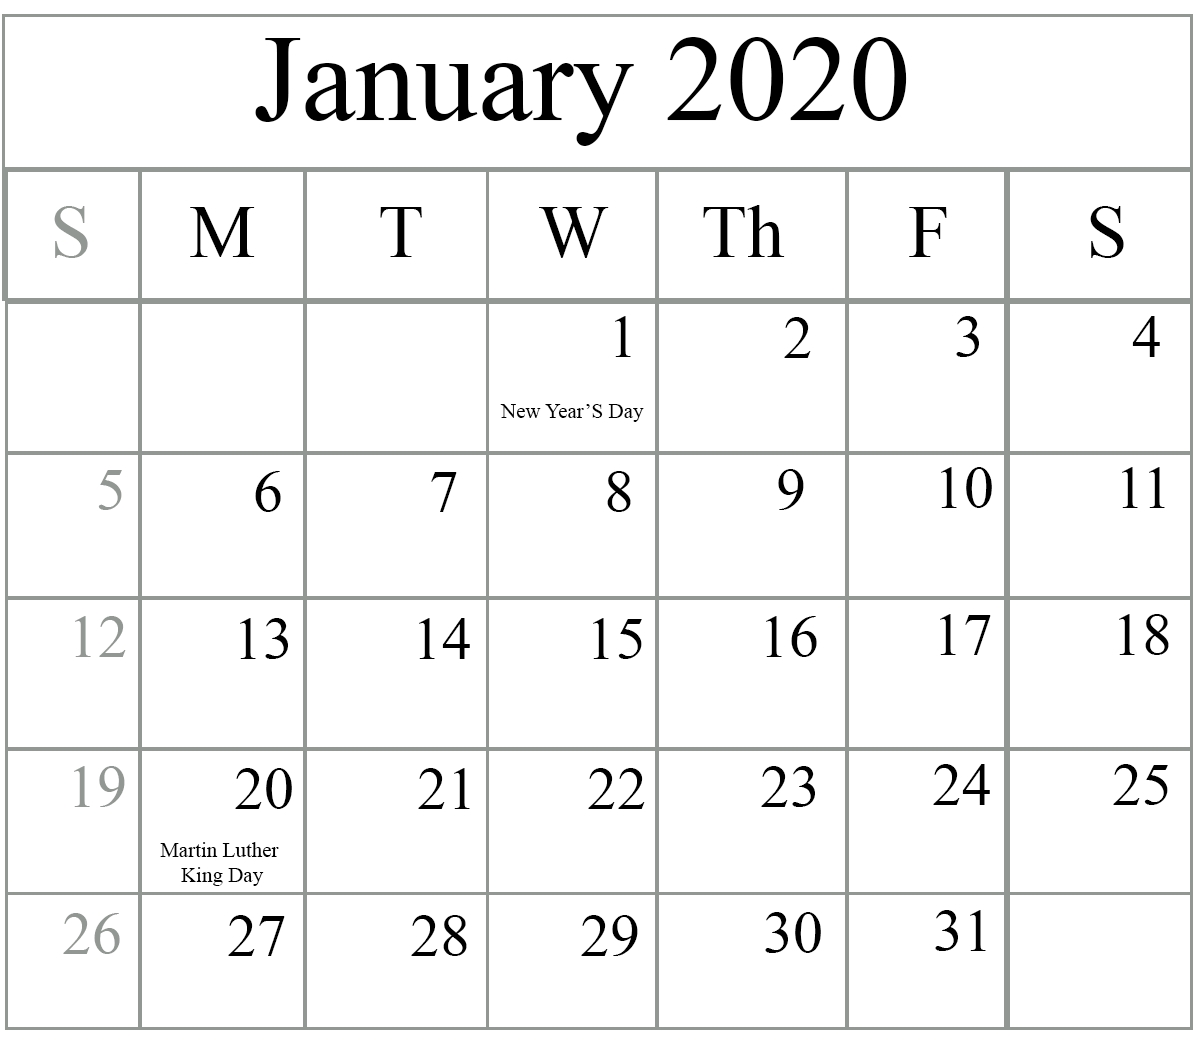 Free January 2020 Printable Calendar In Pdf, Excel & Word-January 2020 Calendar Month